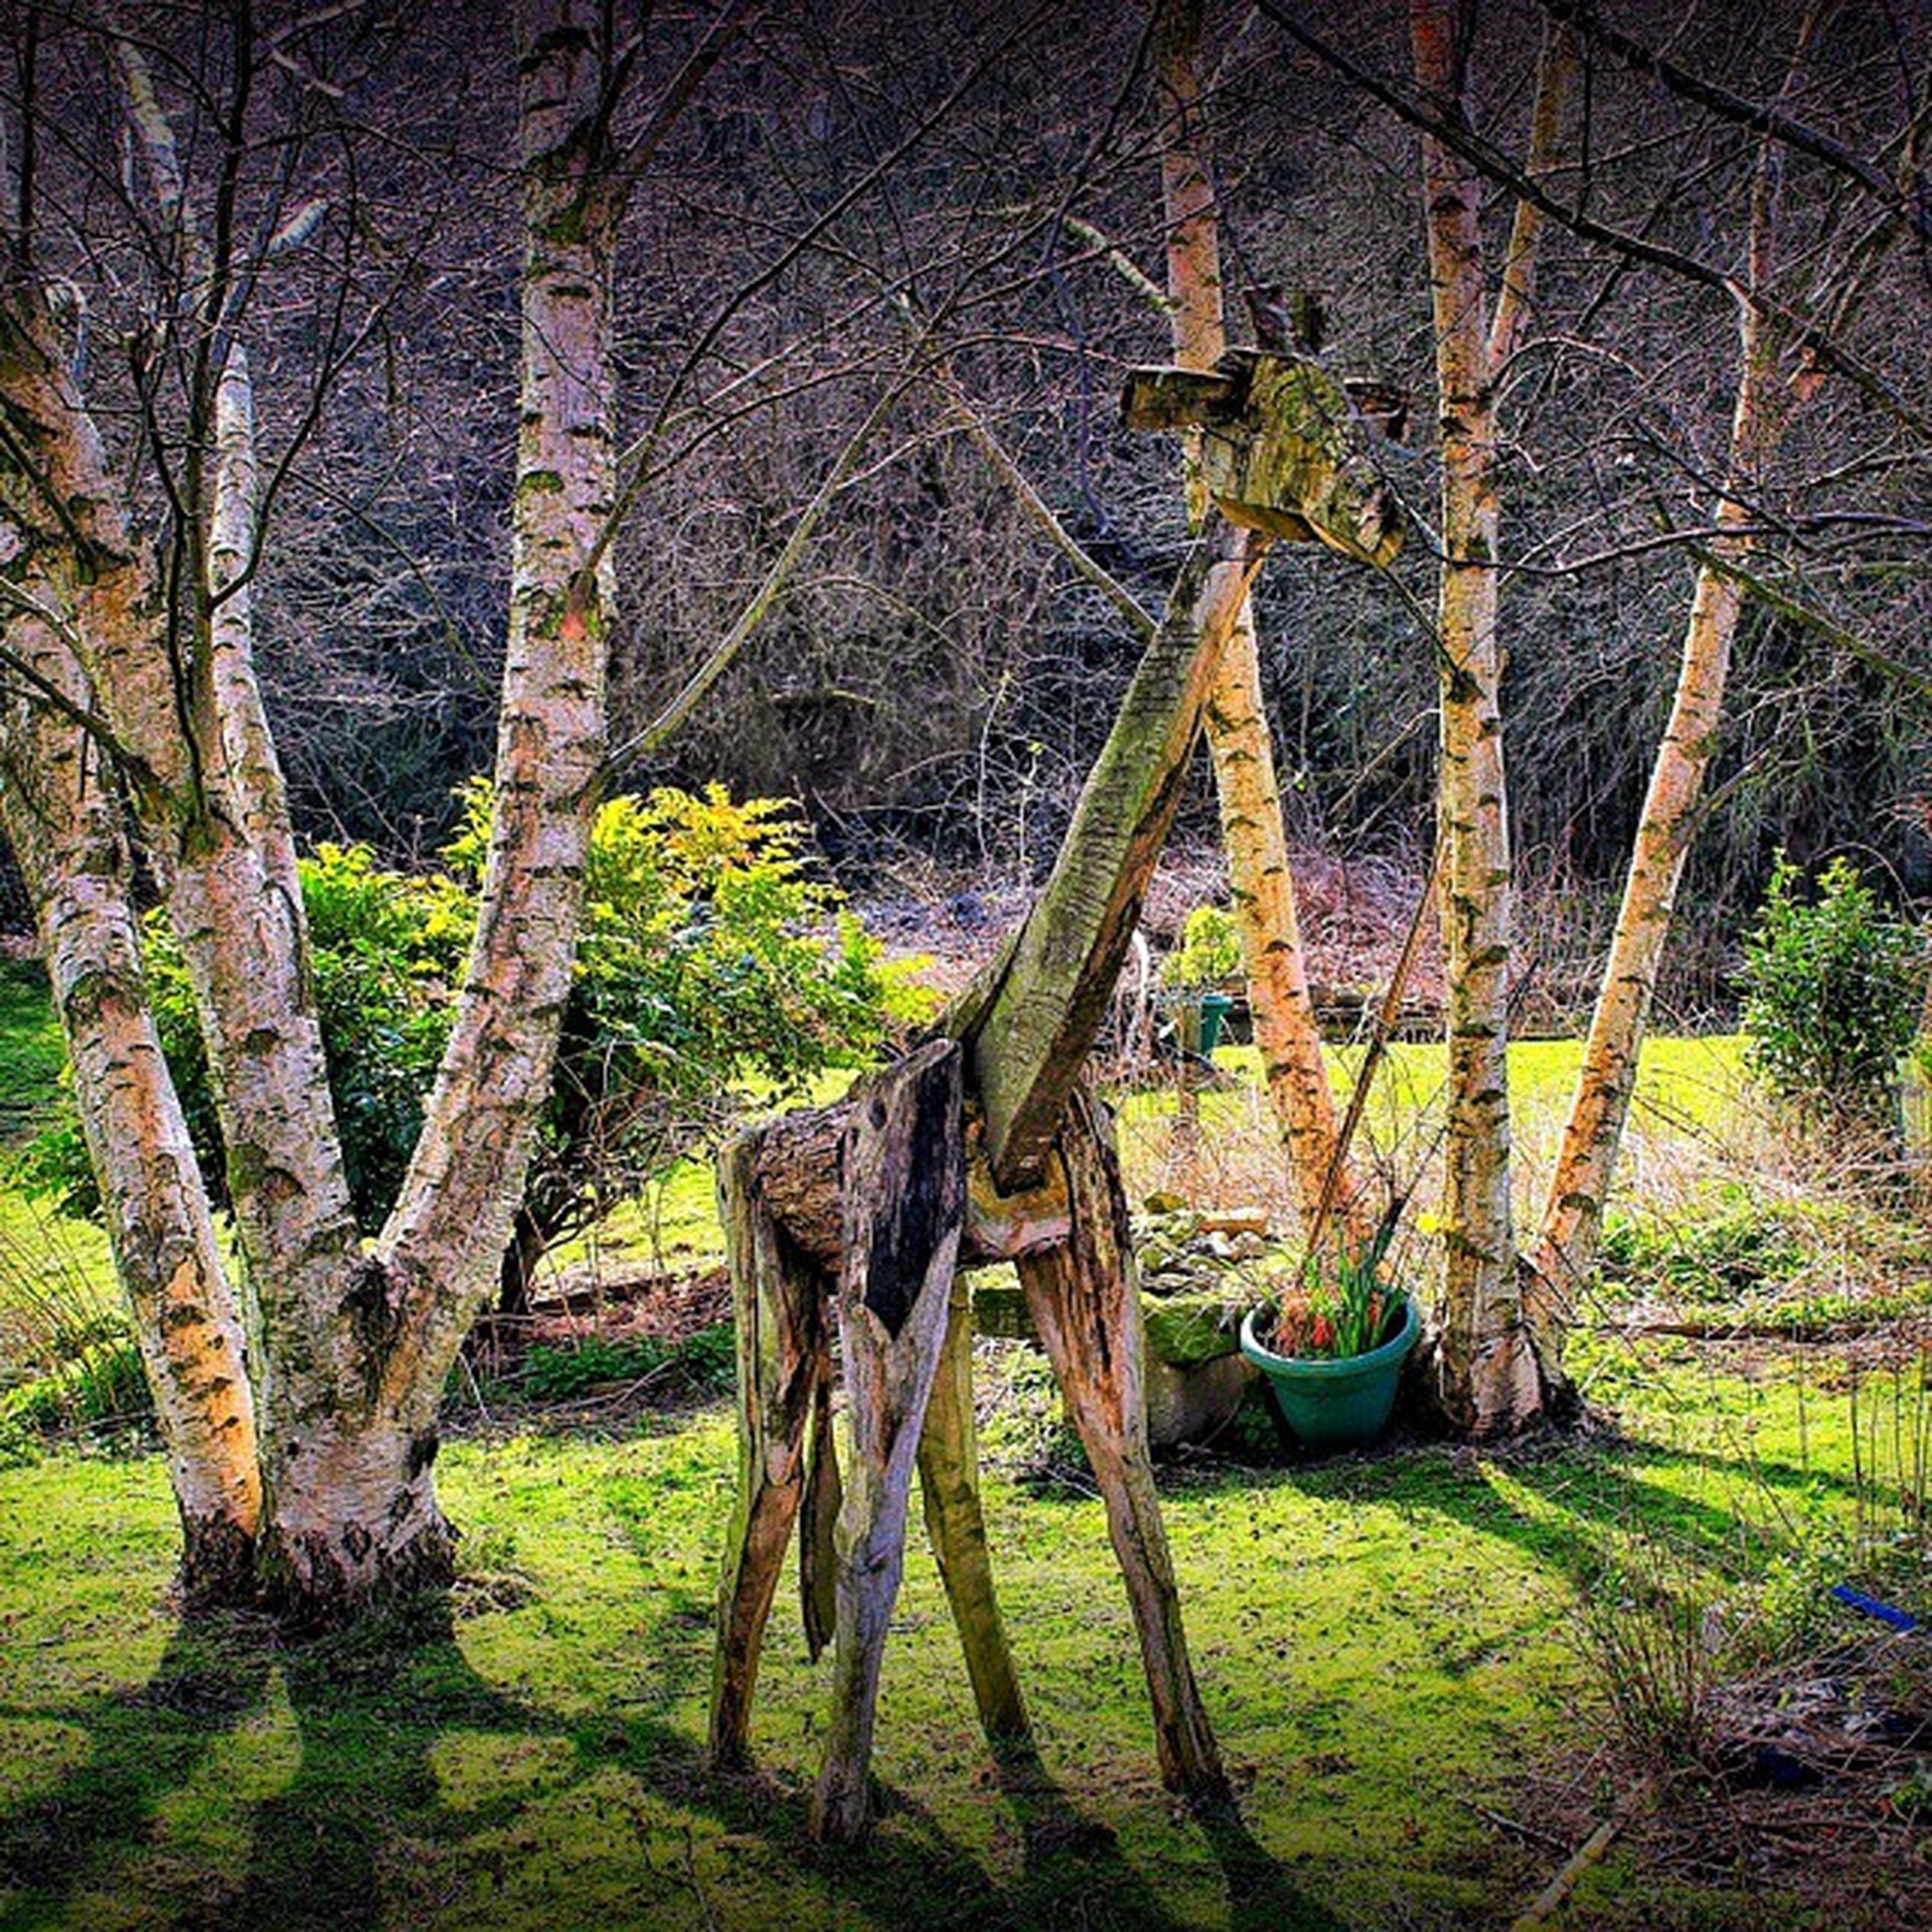 tree, animal themes, grass, field, bare tree, tree trunk, branch, nature, horse, landscape, mammal, one animal, outdoors, growth, day, tranquility, no people, grassy, full length, transportation